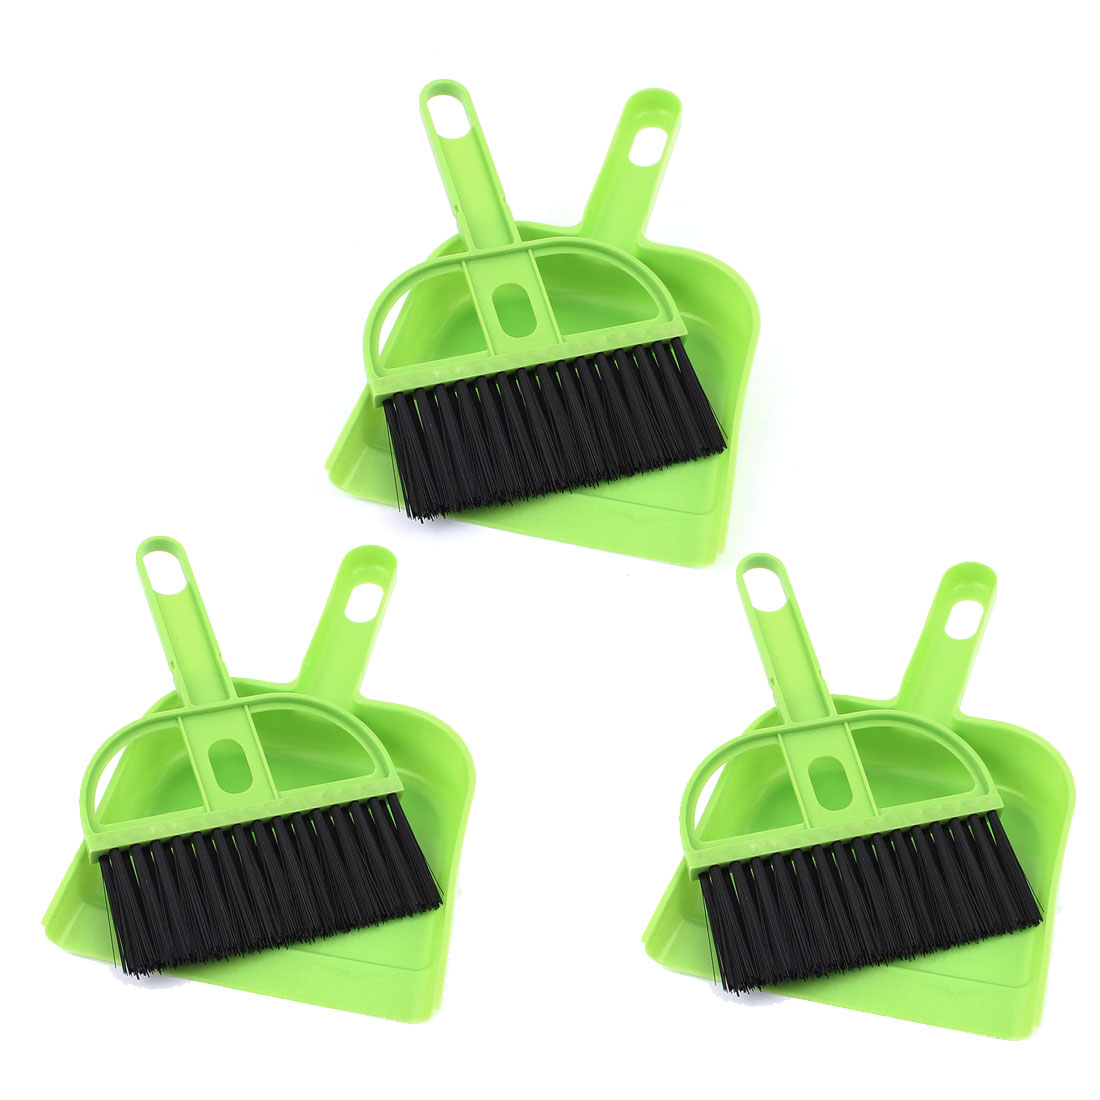 Car Portable Dashboard Console Vent Air Outlet Cleaning Brush Broom Dustpan Green 3 Sets